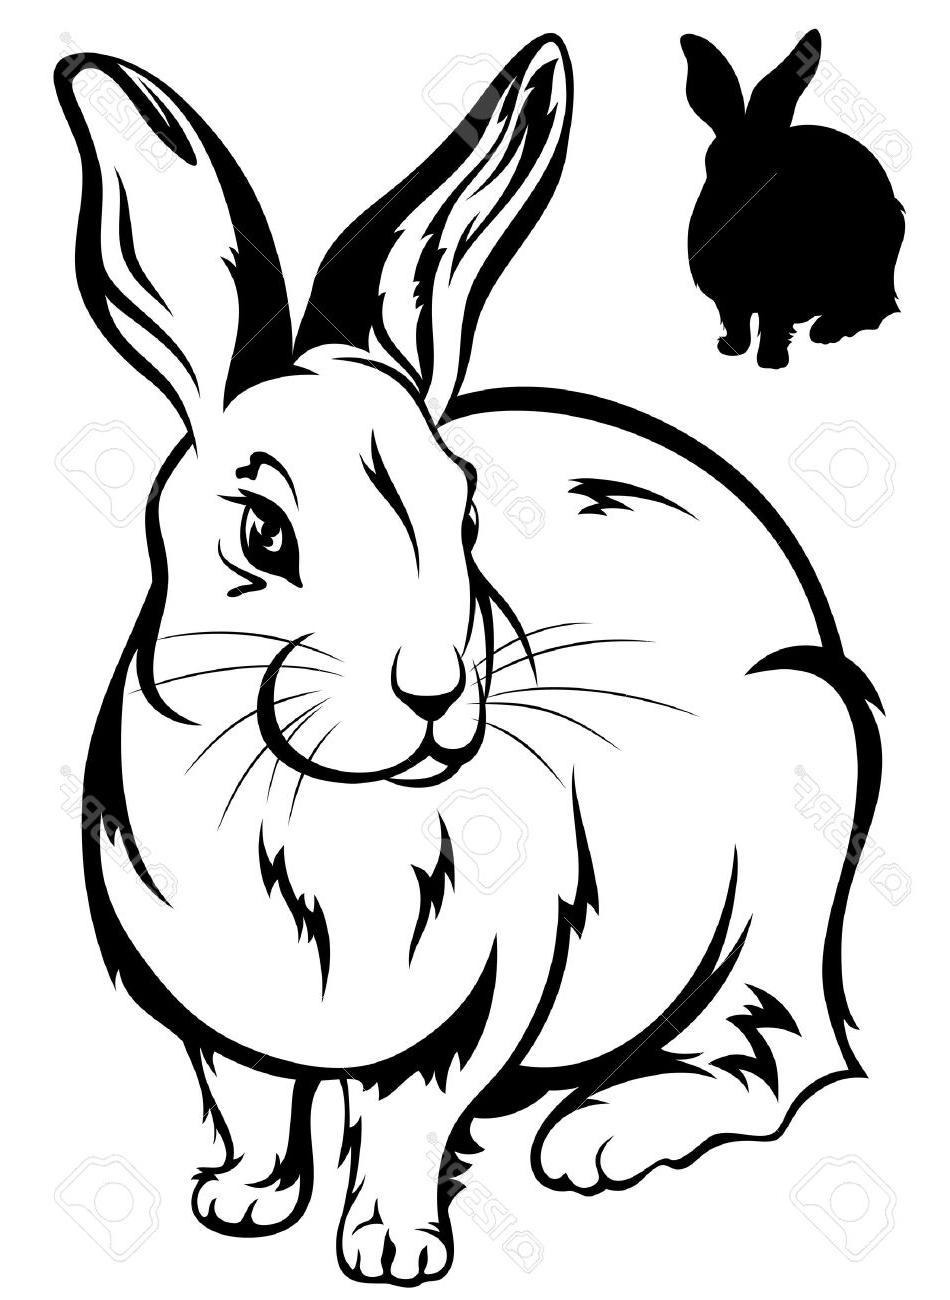 black and white rabbit drawing outline of a bunny free download on clipartmag drawing black rabbit white and